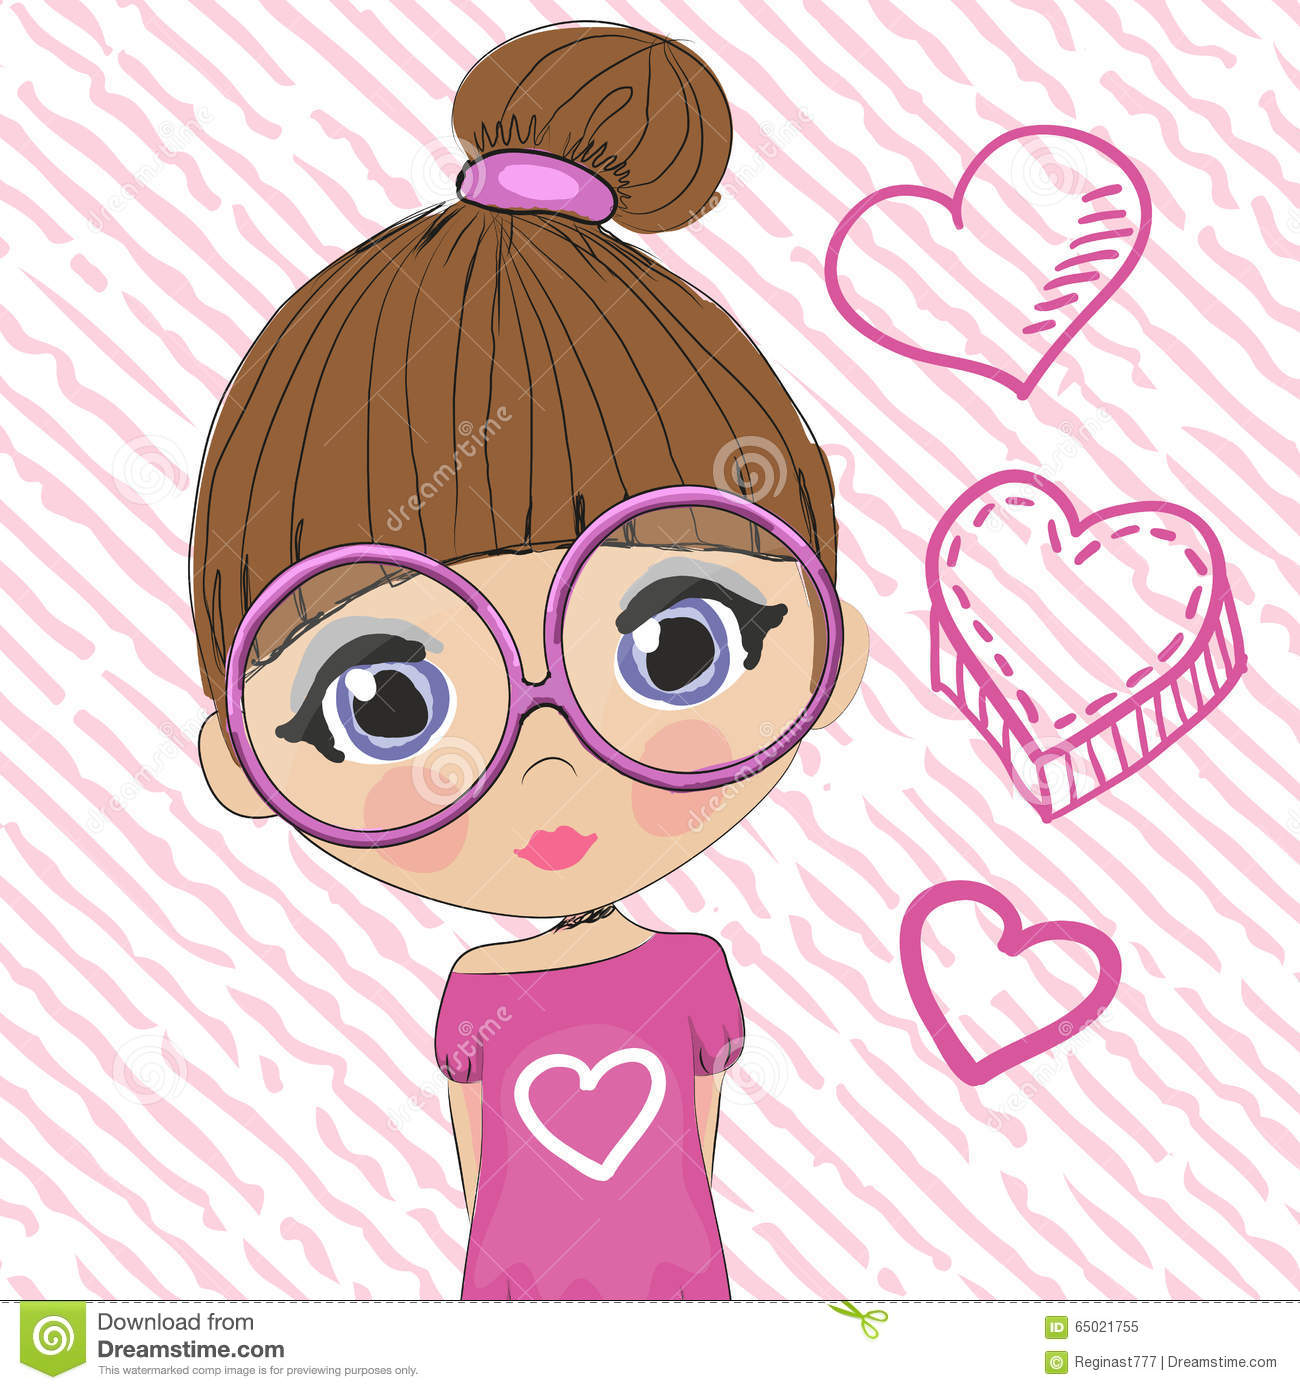 Clipart girl with brown hair and glasses photo 18